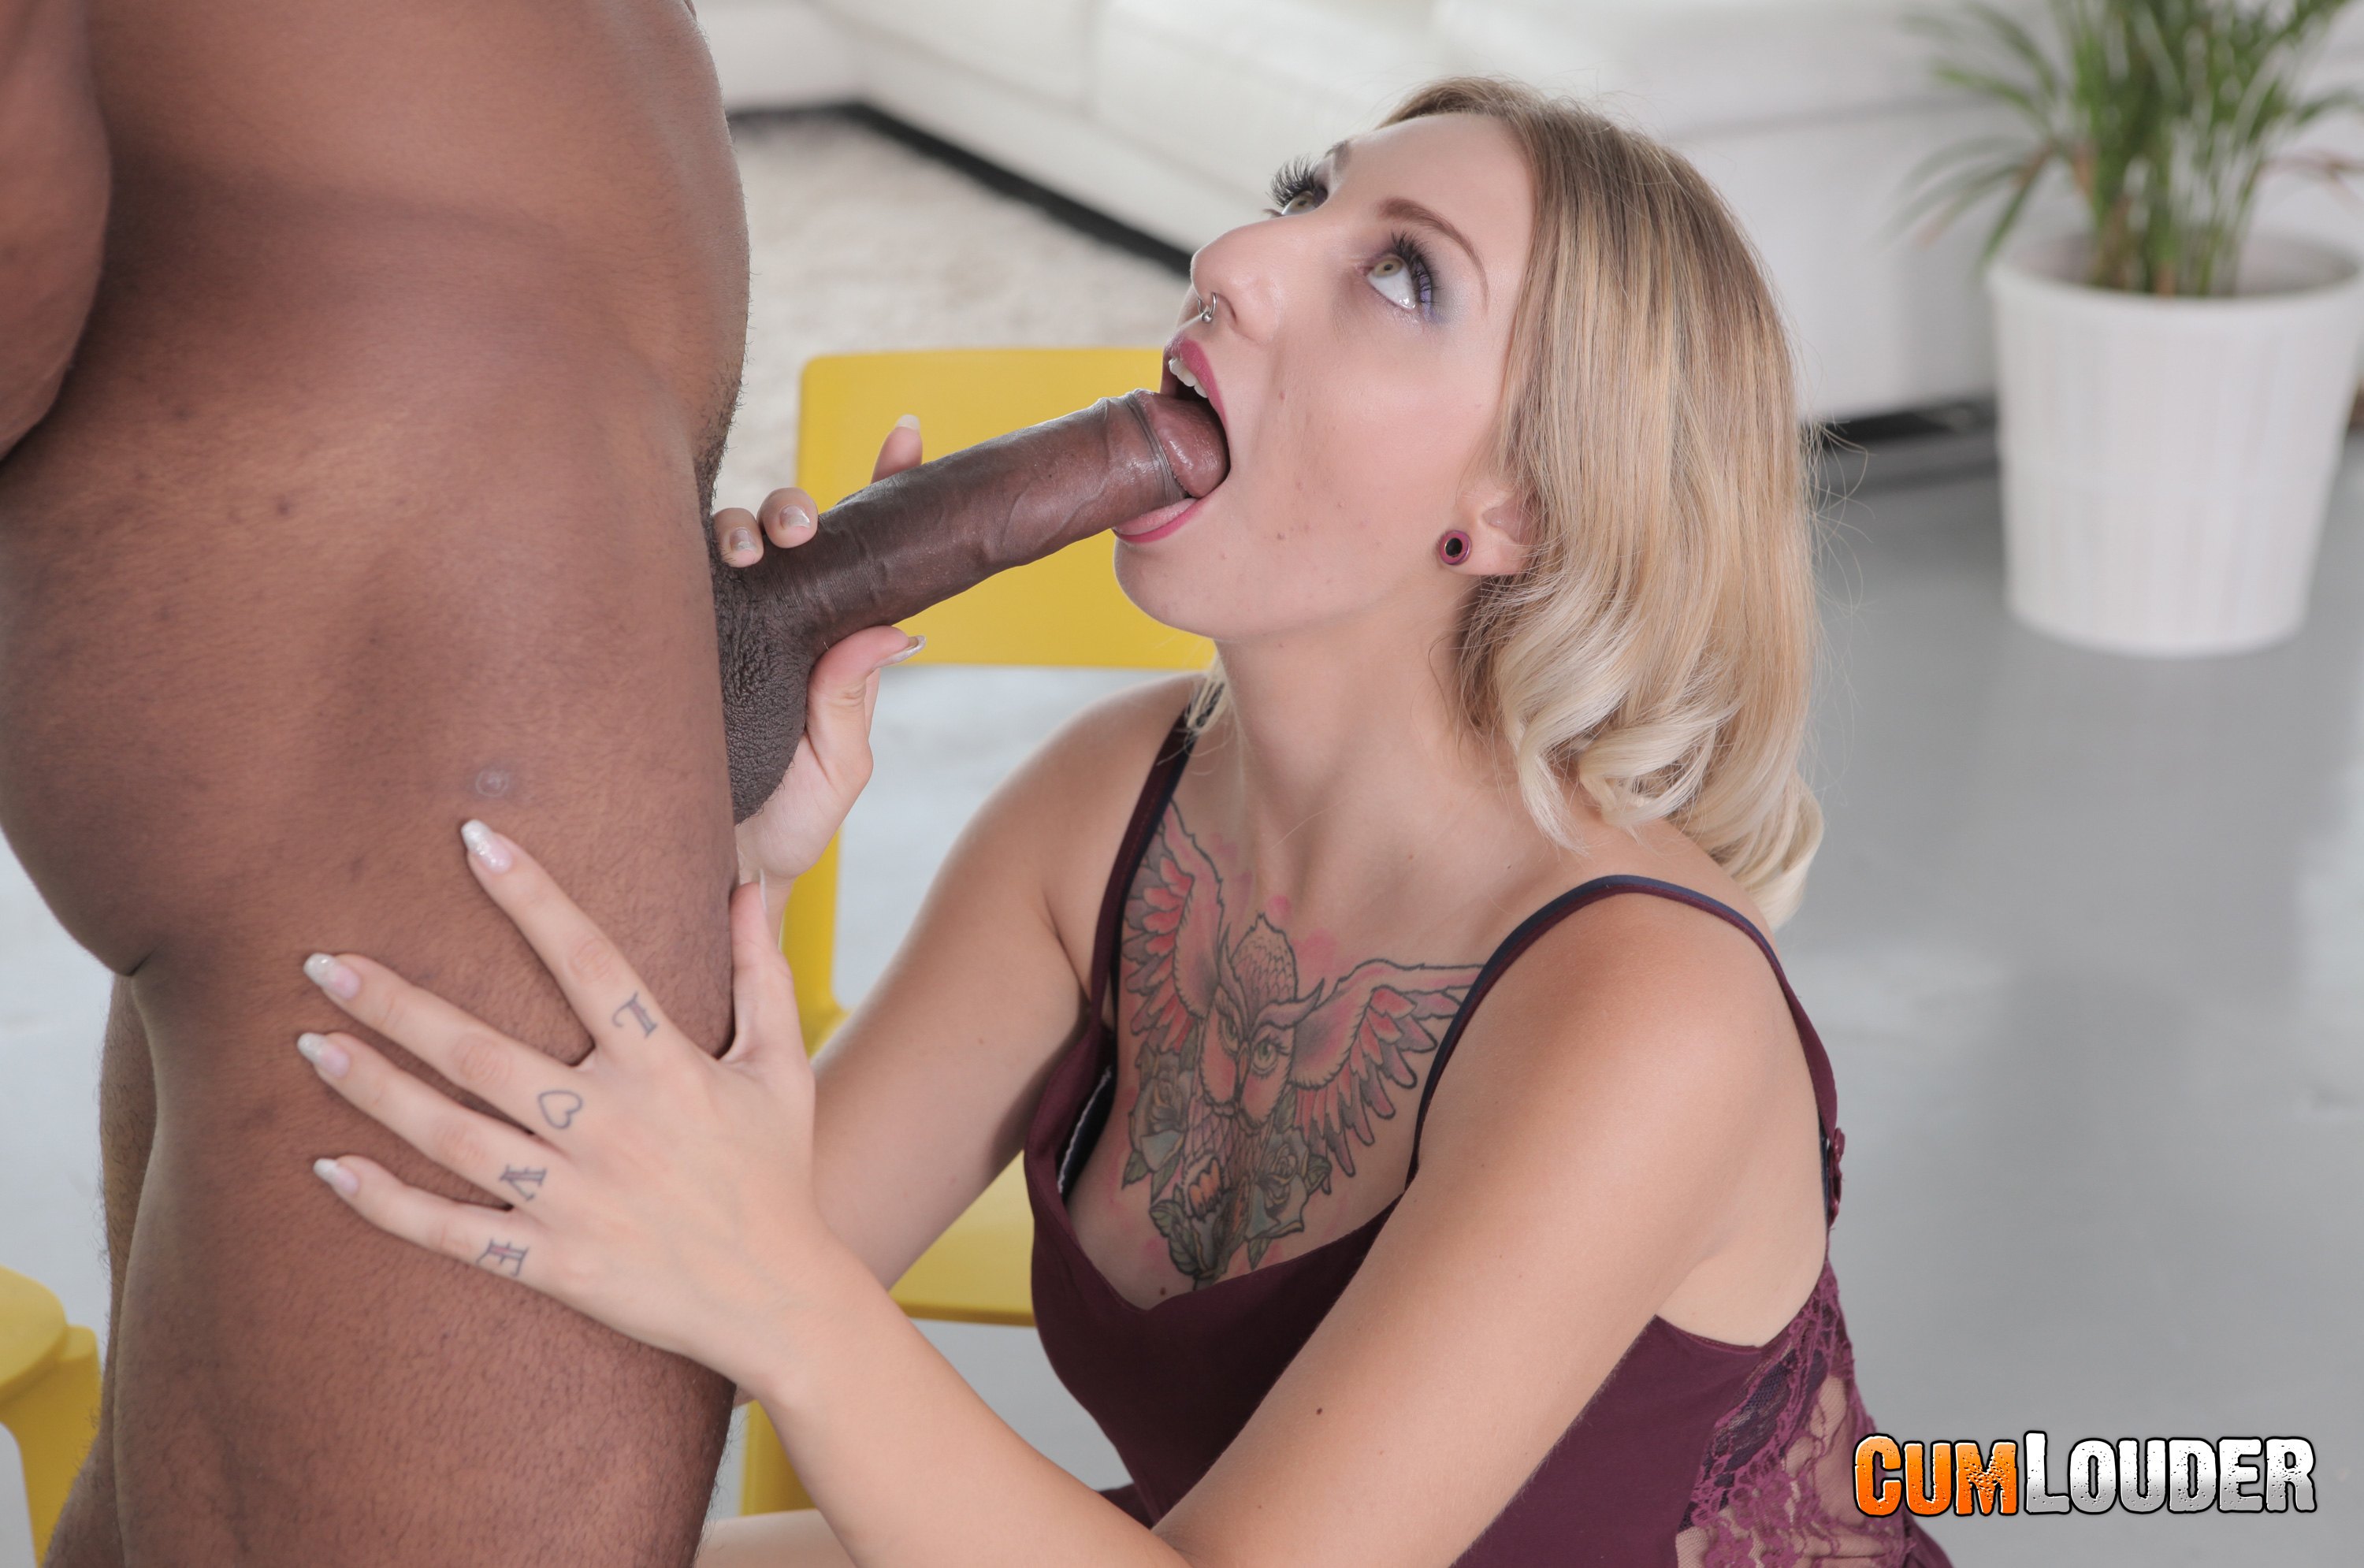 Dirty Talk Cum Swallowing - Free Porn Videos - YouPorn